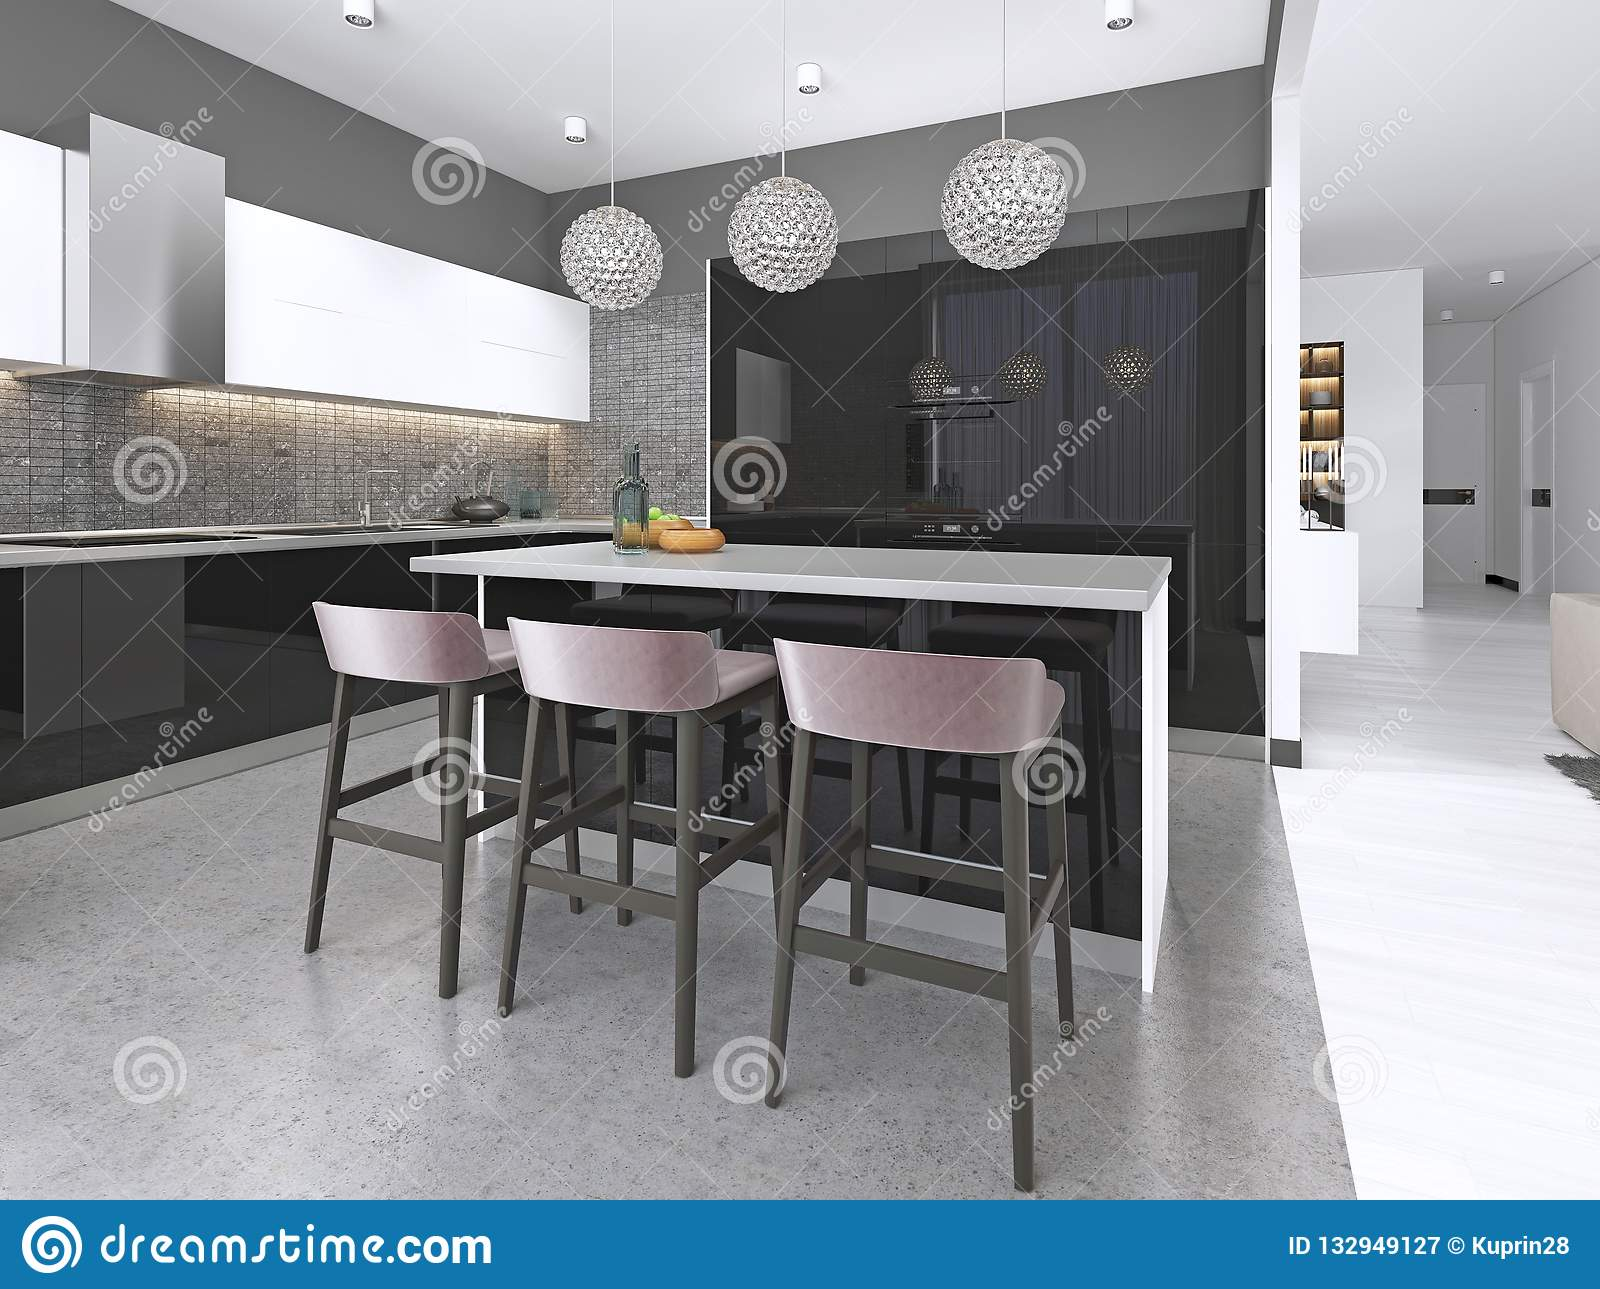 Modern Kitchen With An Island And Bar Stools With Built In Appliances Stock Illustration Illustration Of Furnishing Interior 132949127